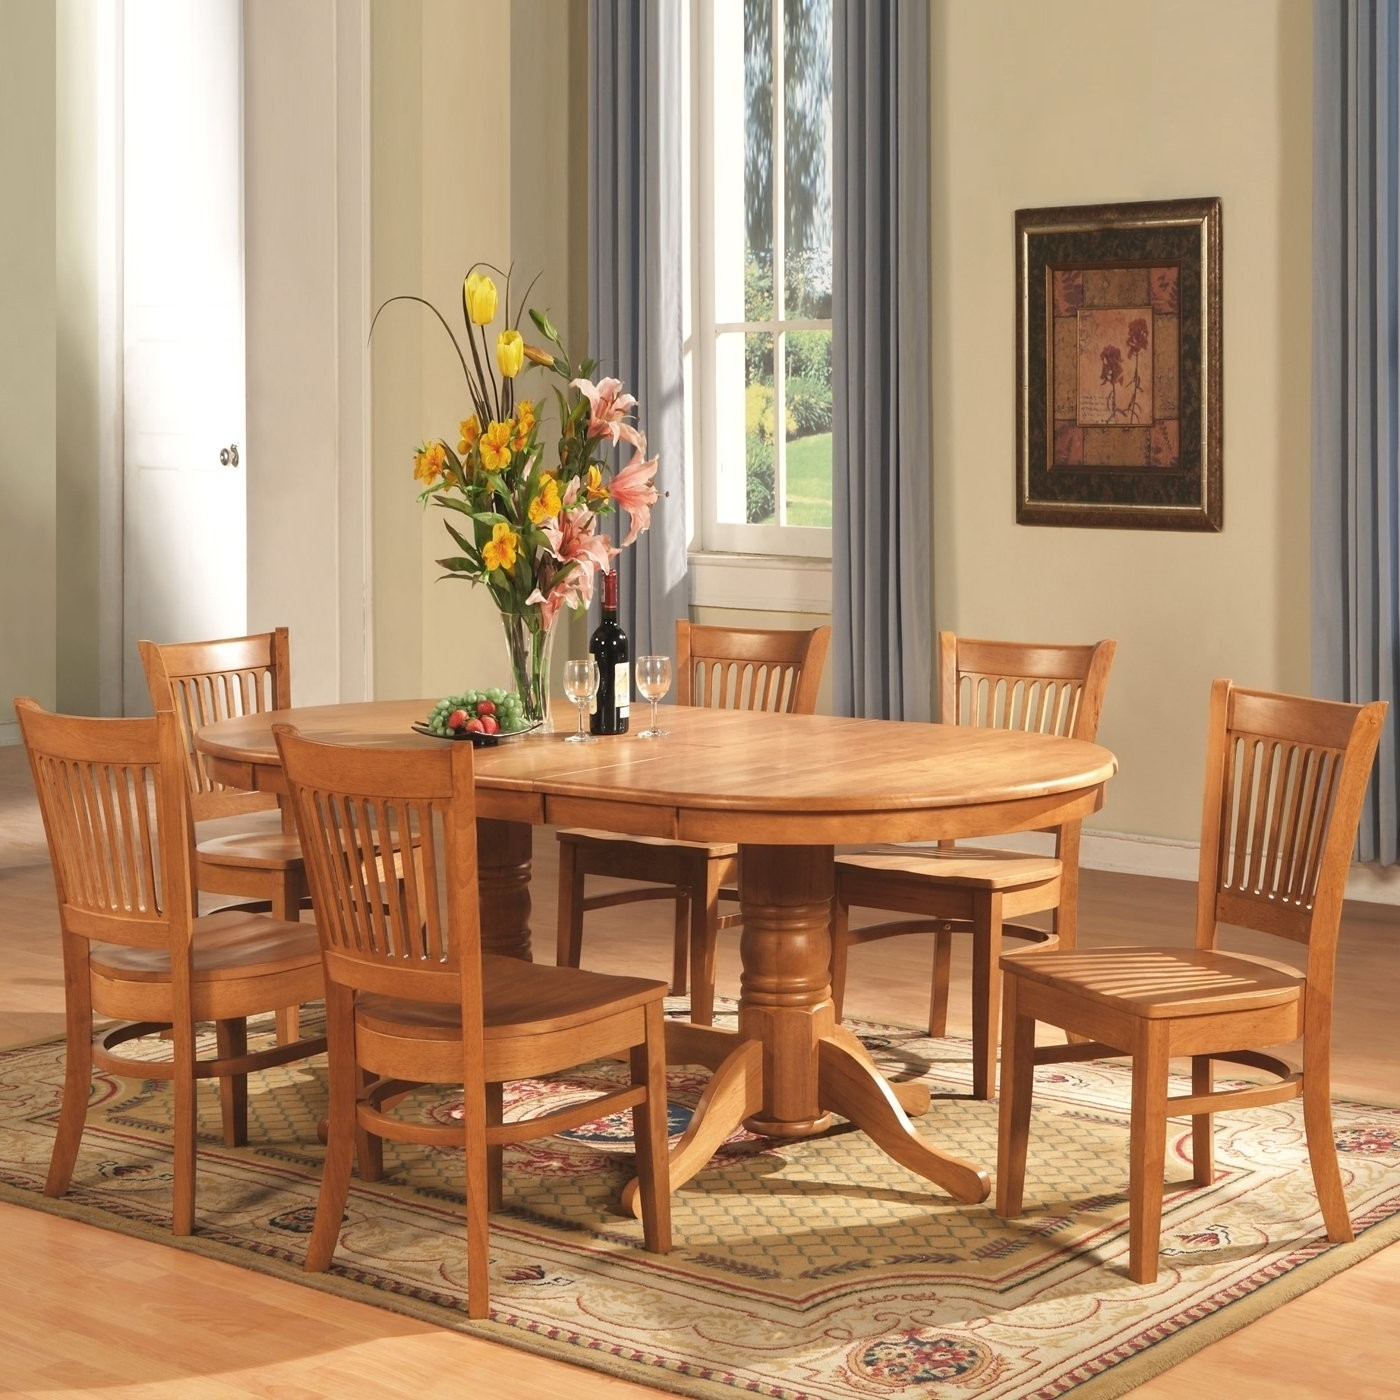 Trendy Solid Oak Dining Room Table And 8 Chairs Best Of Inspirational Oak Intended For Oak Dining Tables With 6 Chairs (View 20 of 25)